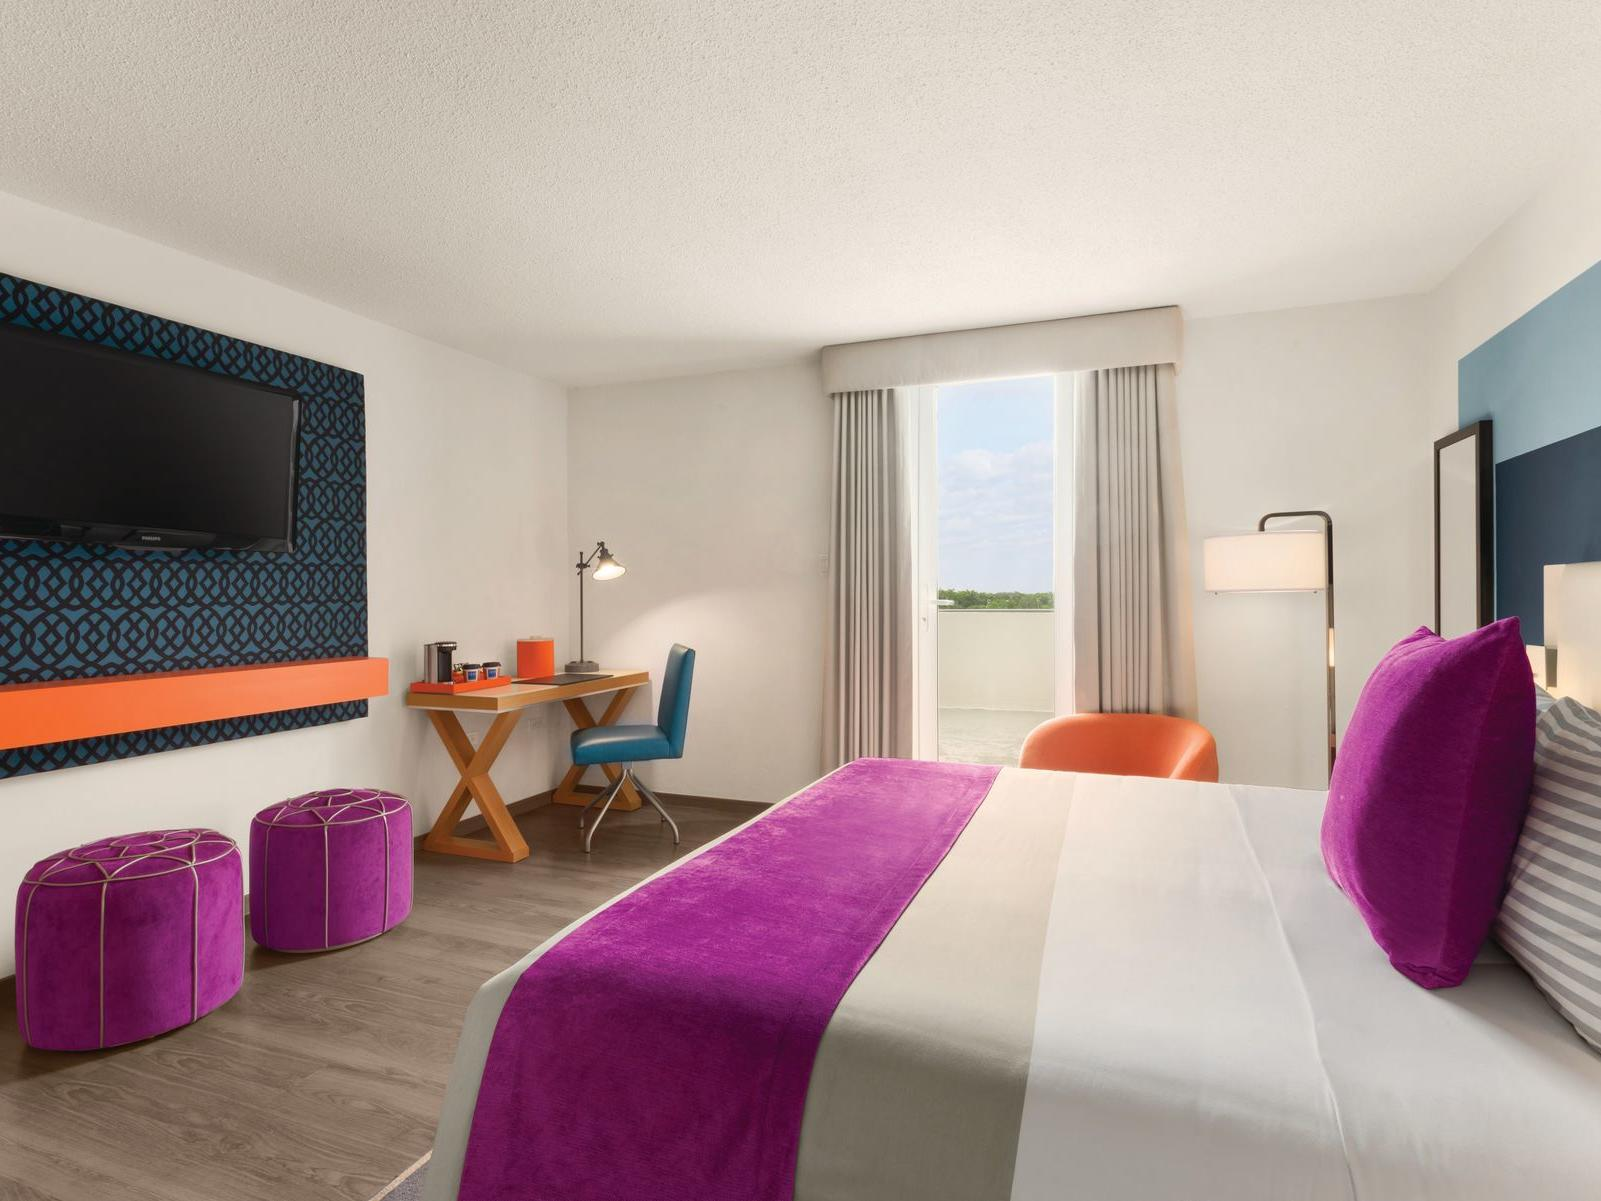 Isla Verde room with king bed, television on wall and window